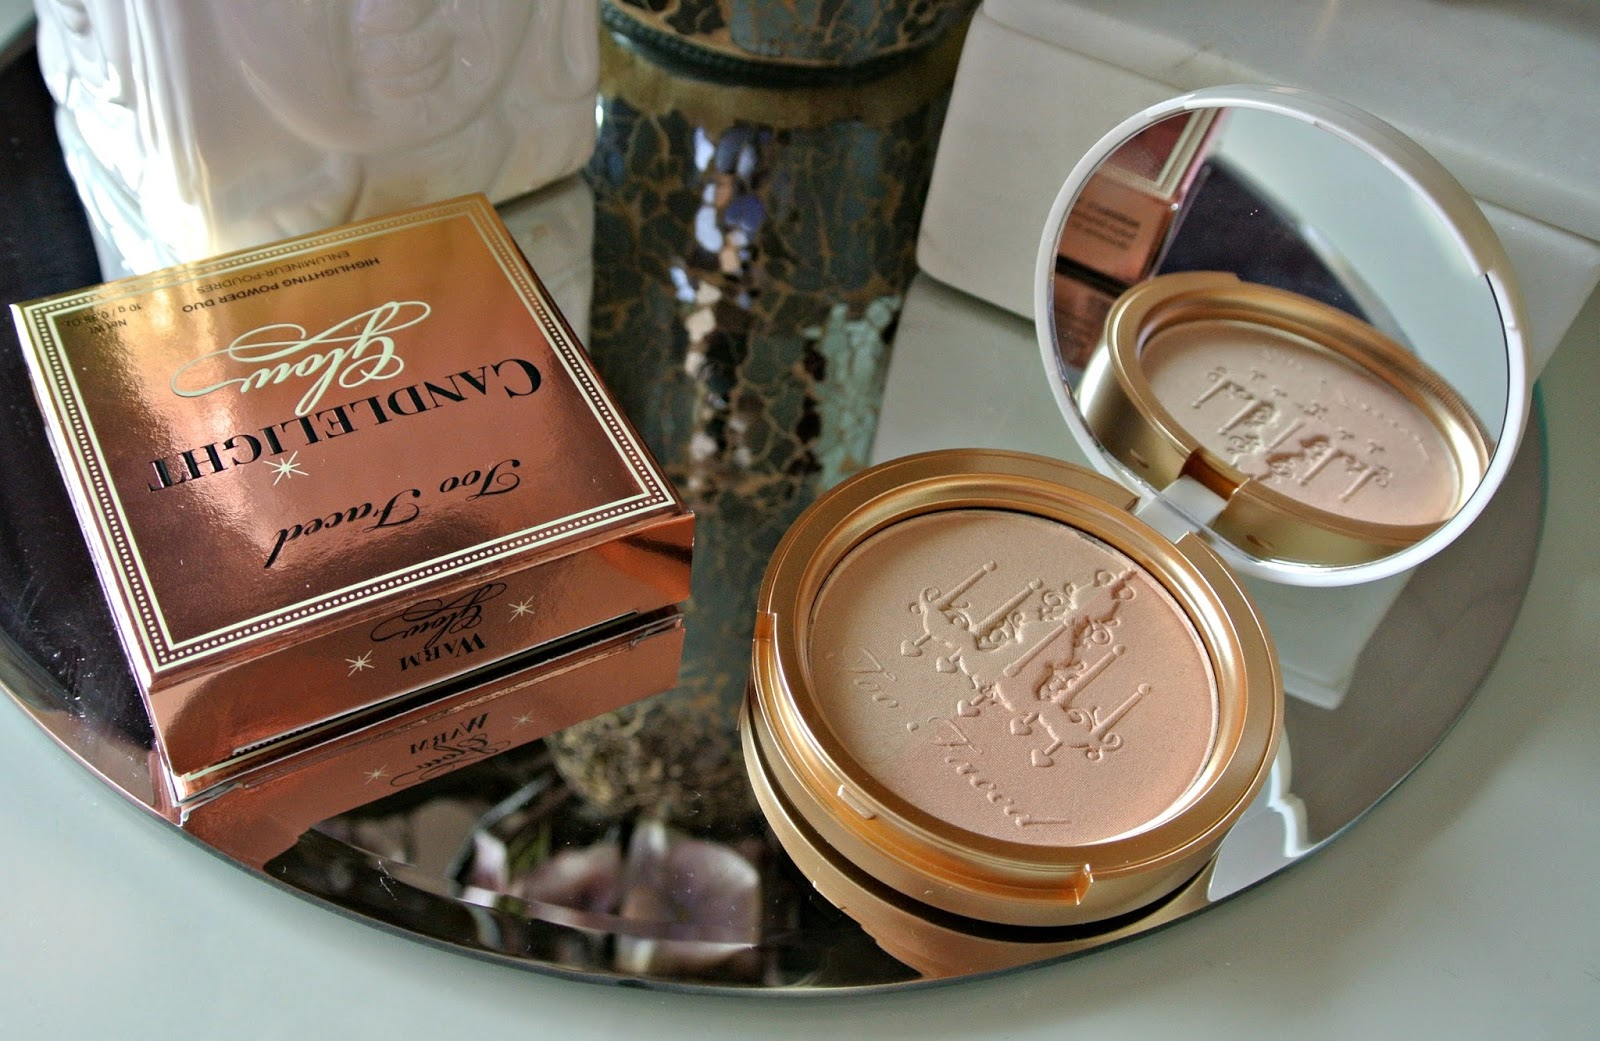 Too Faced Candlelight Glow Highlighter in Warm Glow